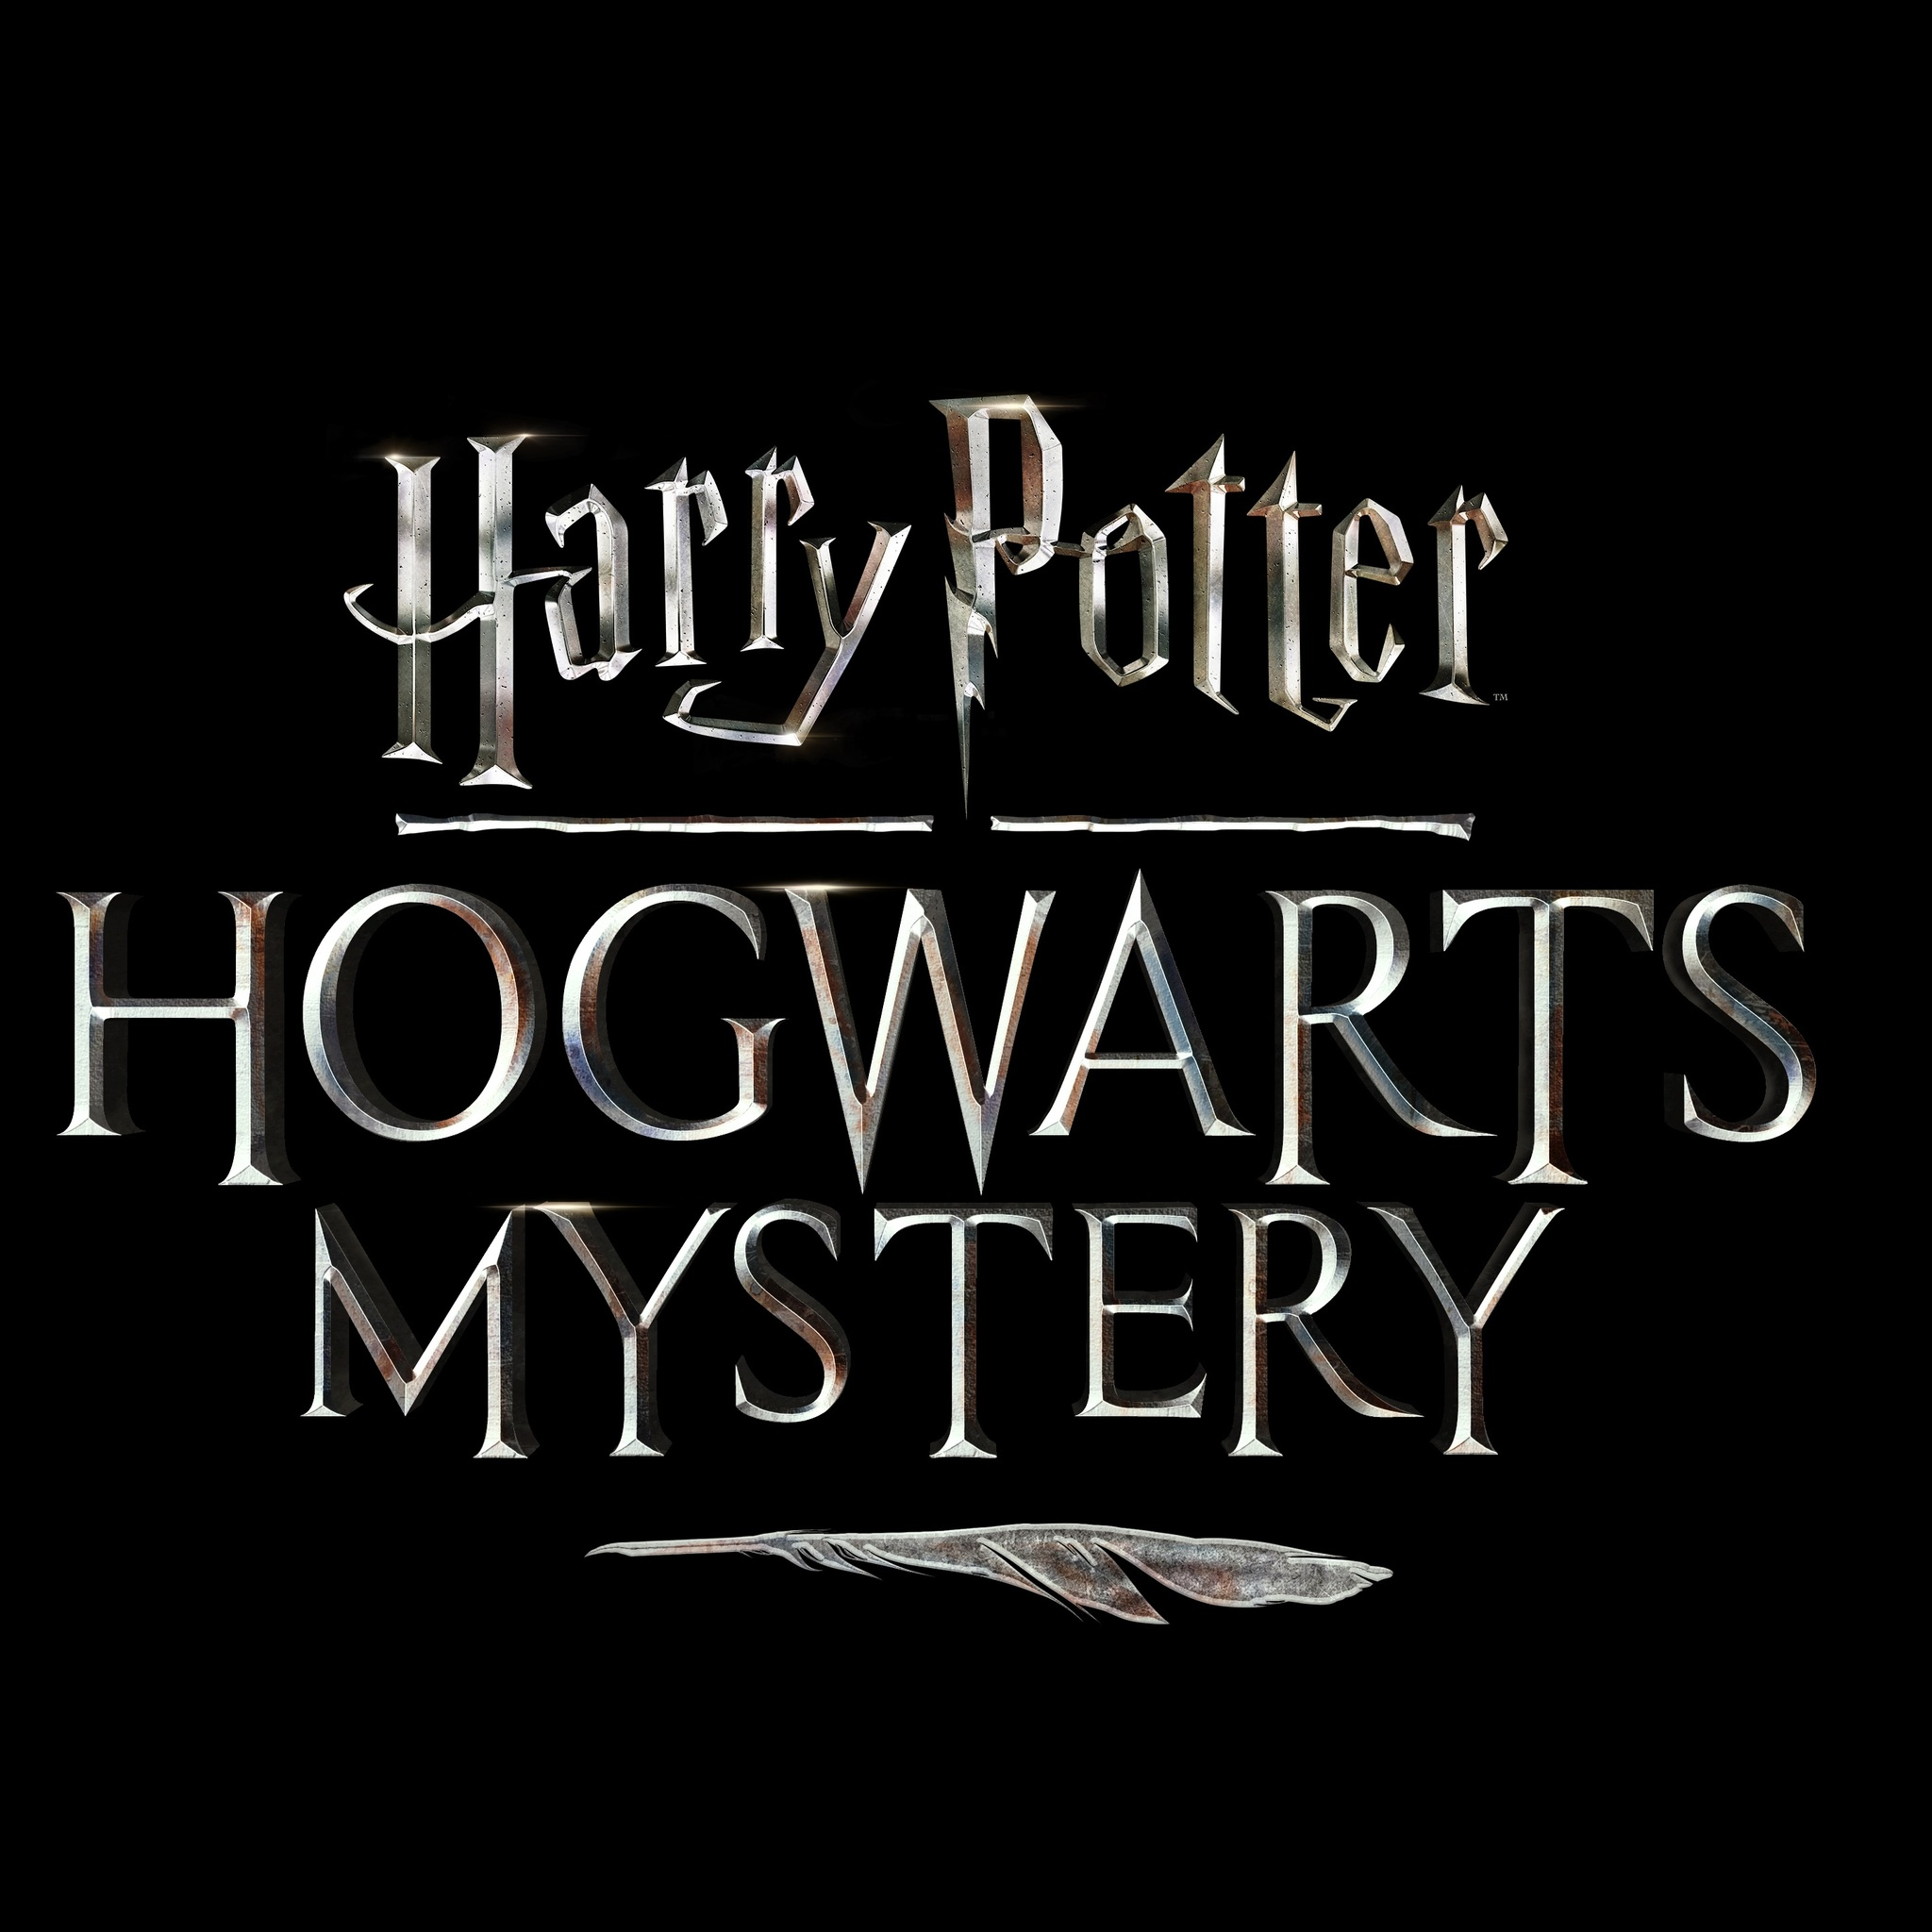 Beautiful Wallpaper Harry Potter Ipad Air - harry-potter-hogwarts-mystery-game-logo-gc-2048x2048  Snapshot_915636.jpg